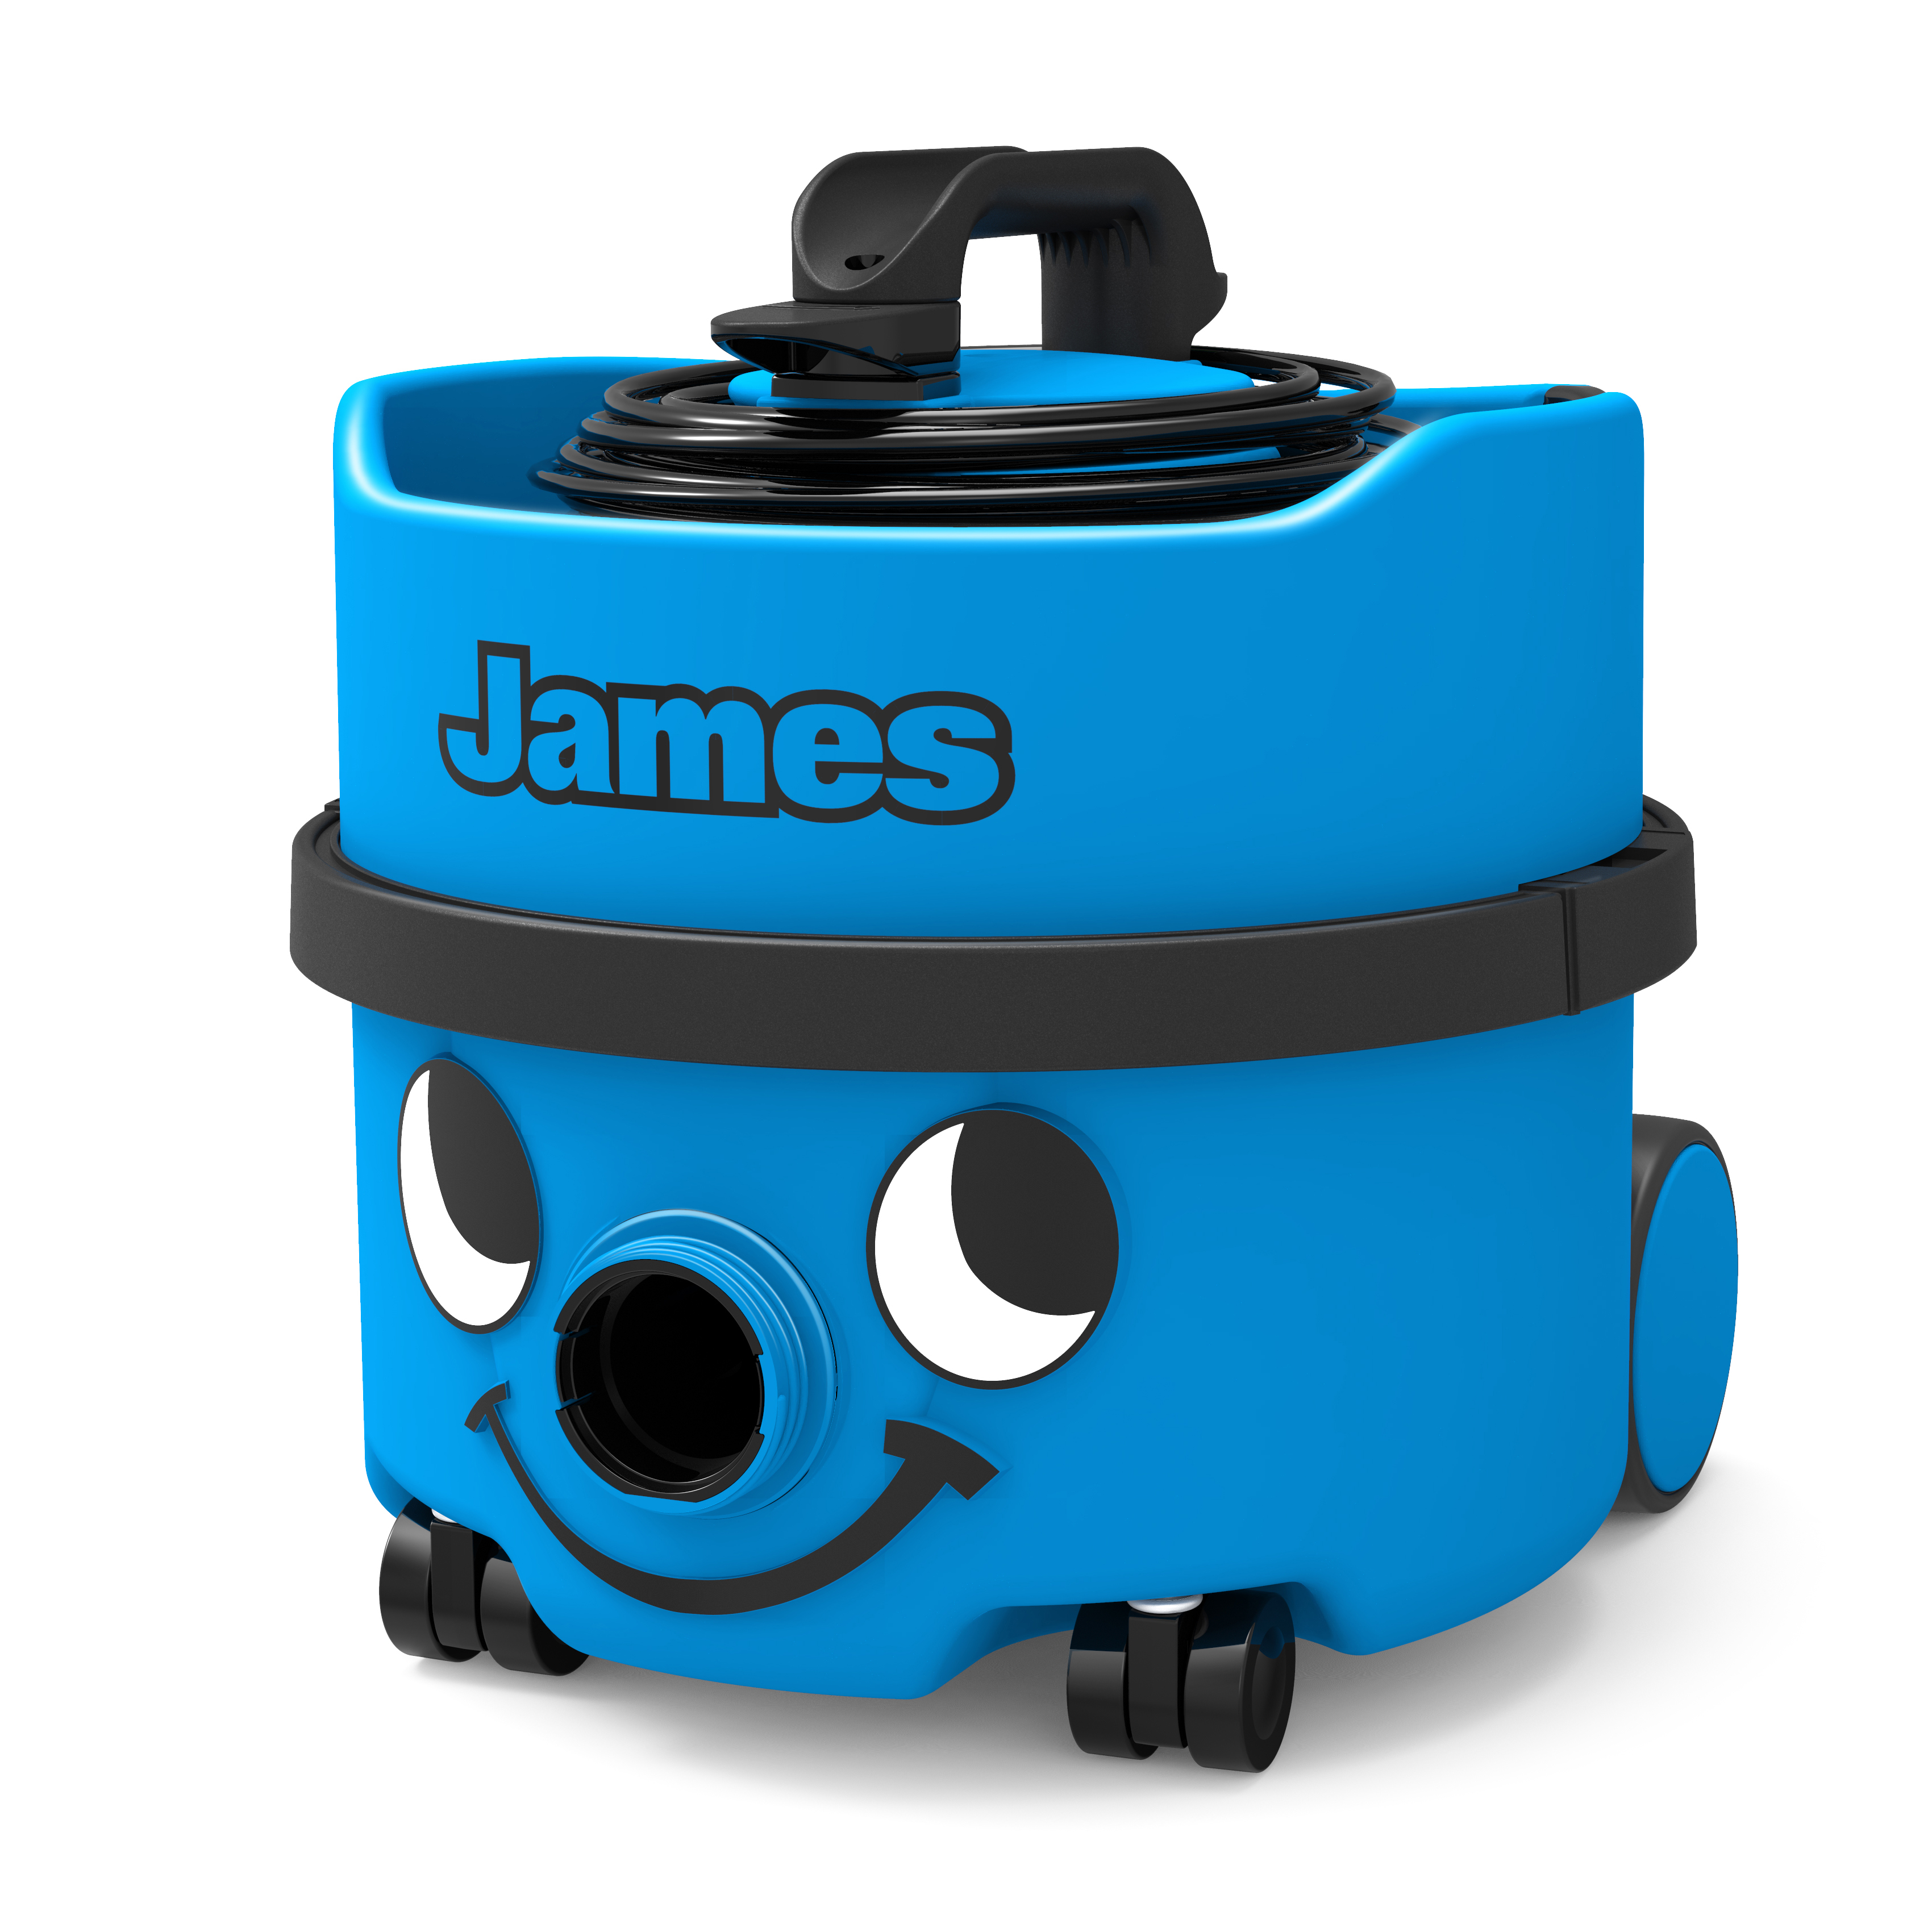 Numatic James Vacuum Cleaner 500-800W 8 Litre 7Kg Blue Ref 909392